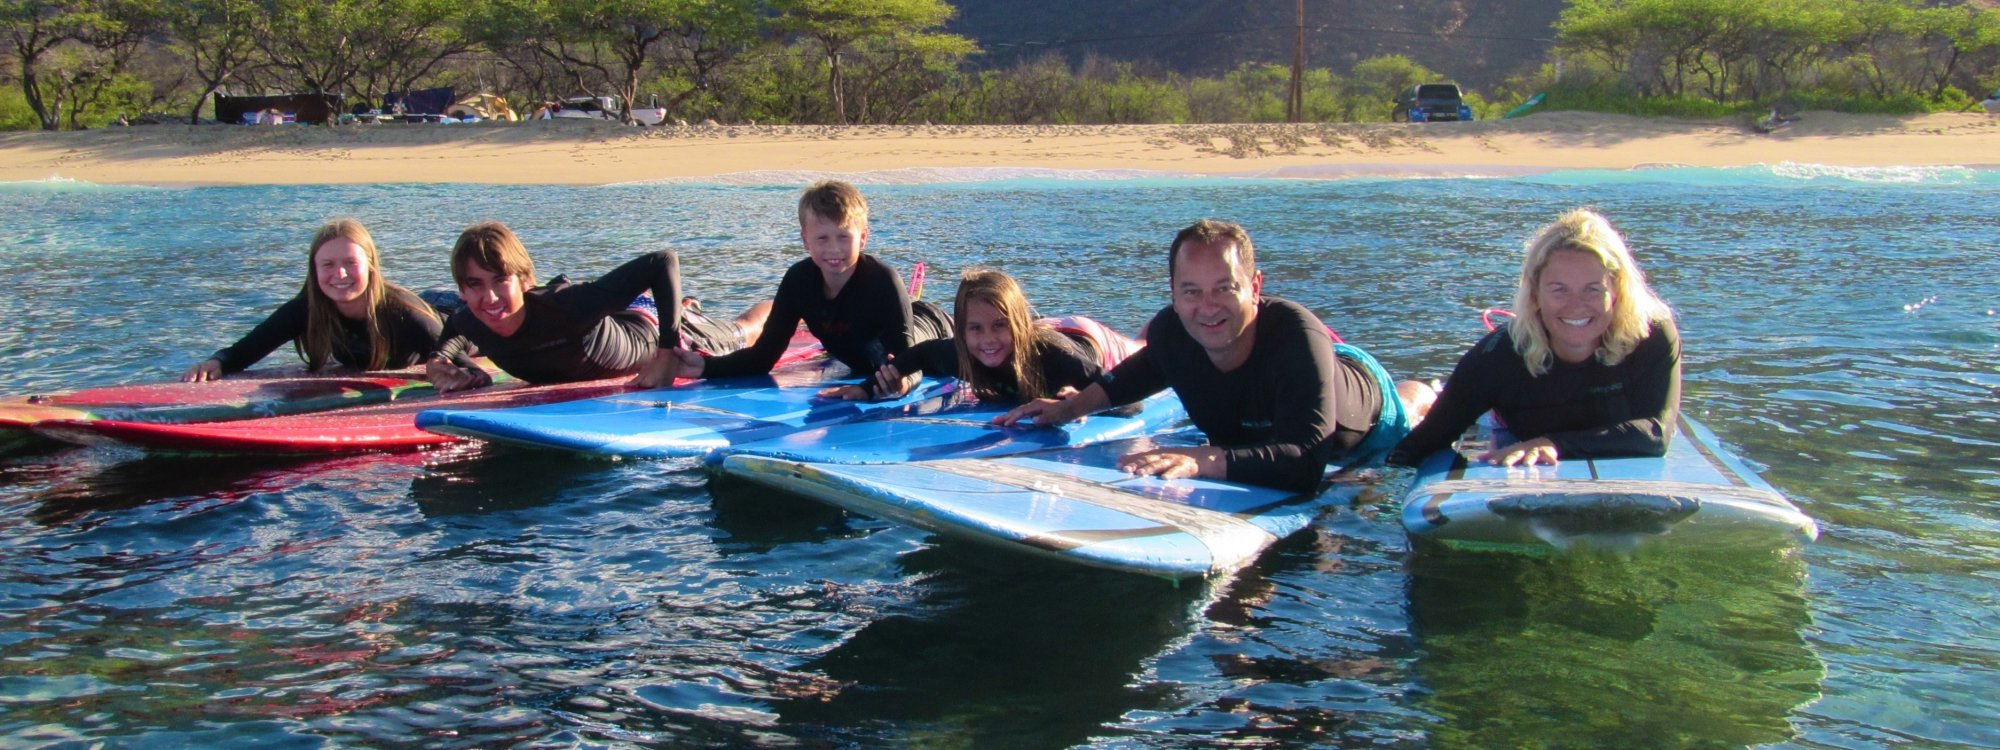 Soul Surfing Maui's Beginner Lesson Program Is An Awesome Family Adventure That Will Have Everyone Smiling Big Time !